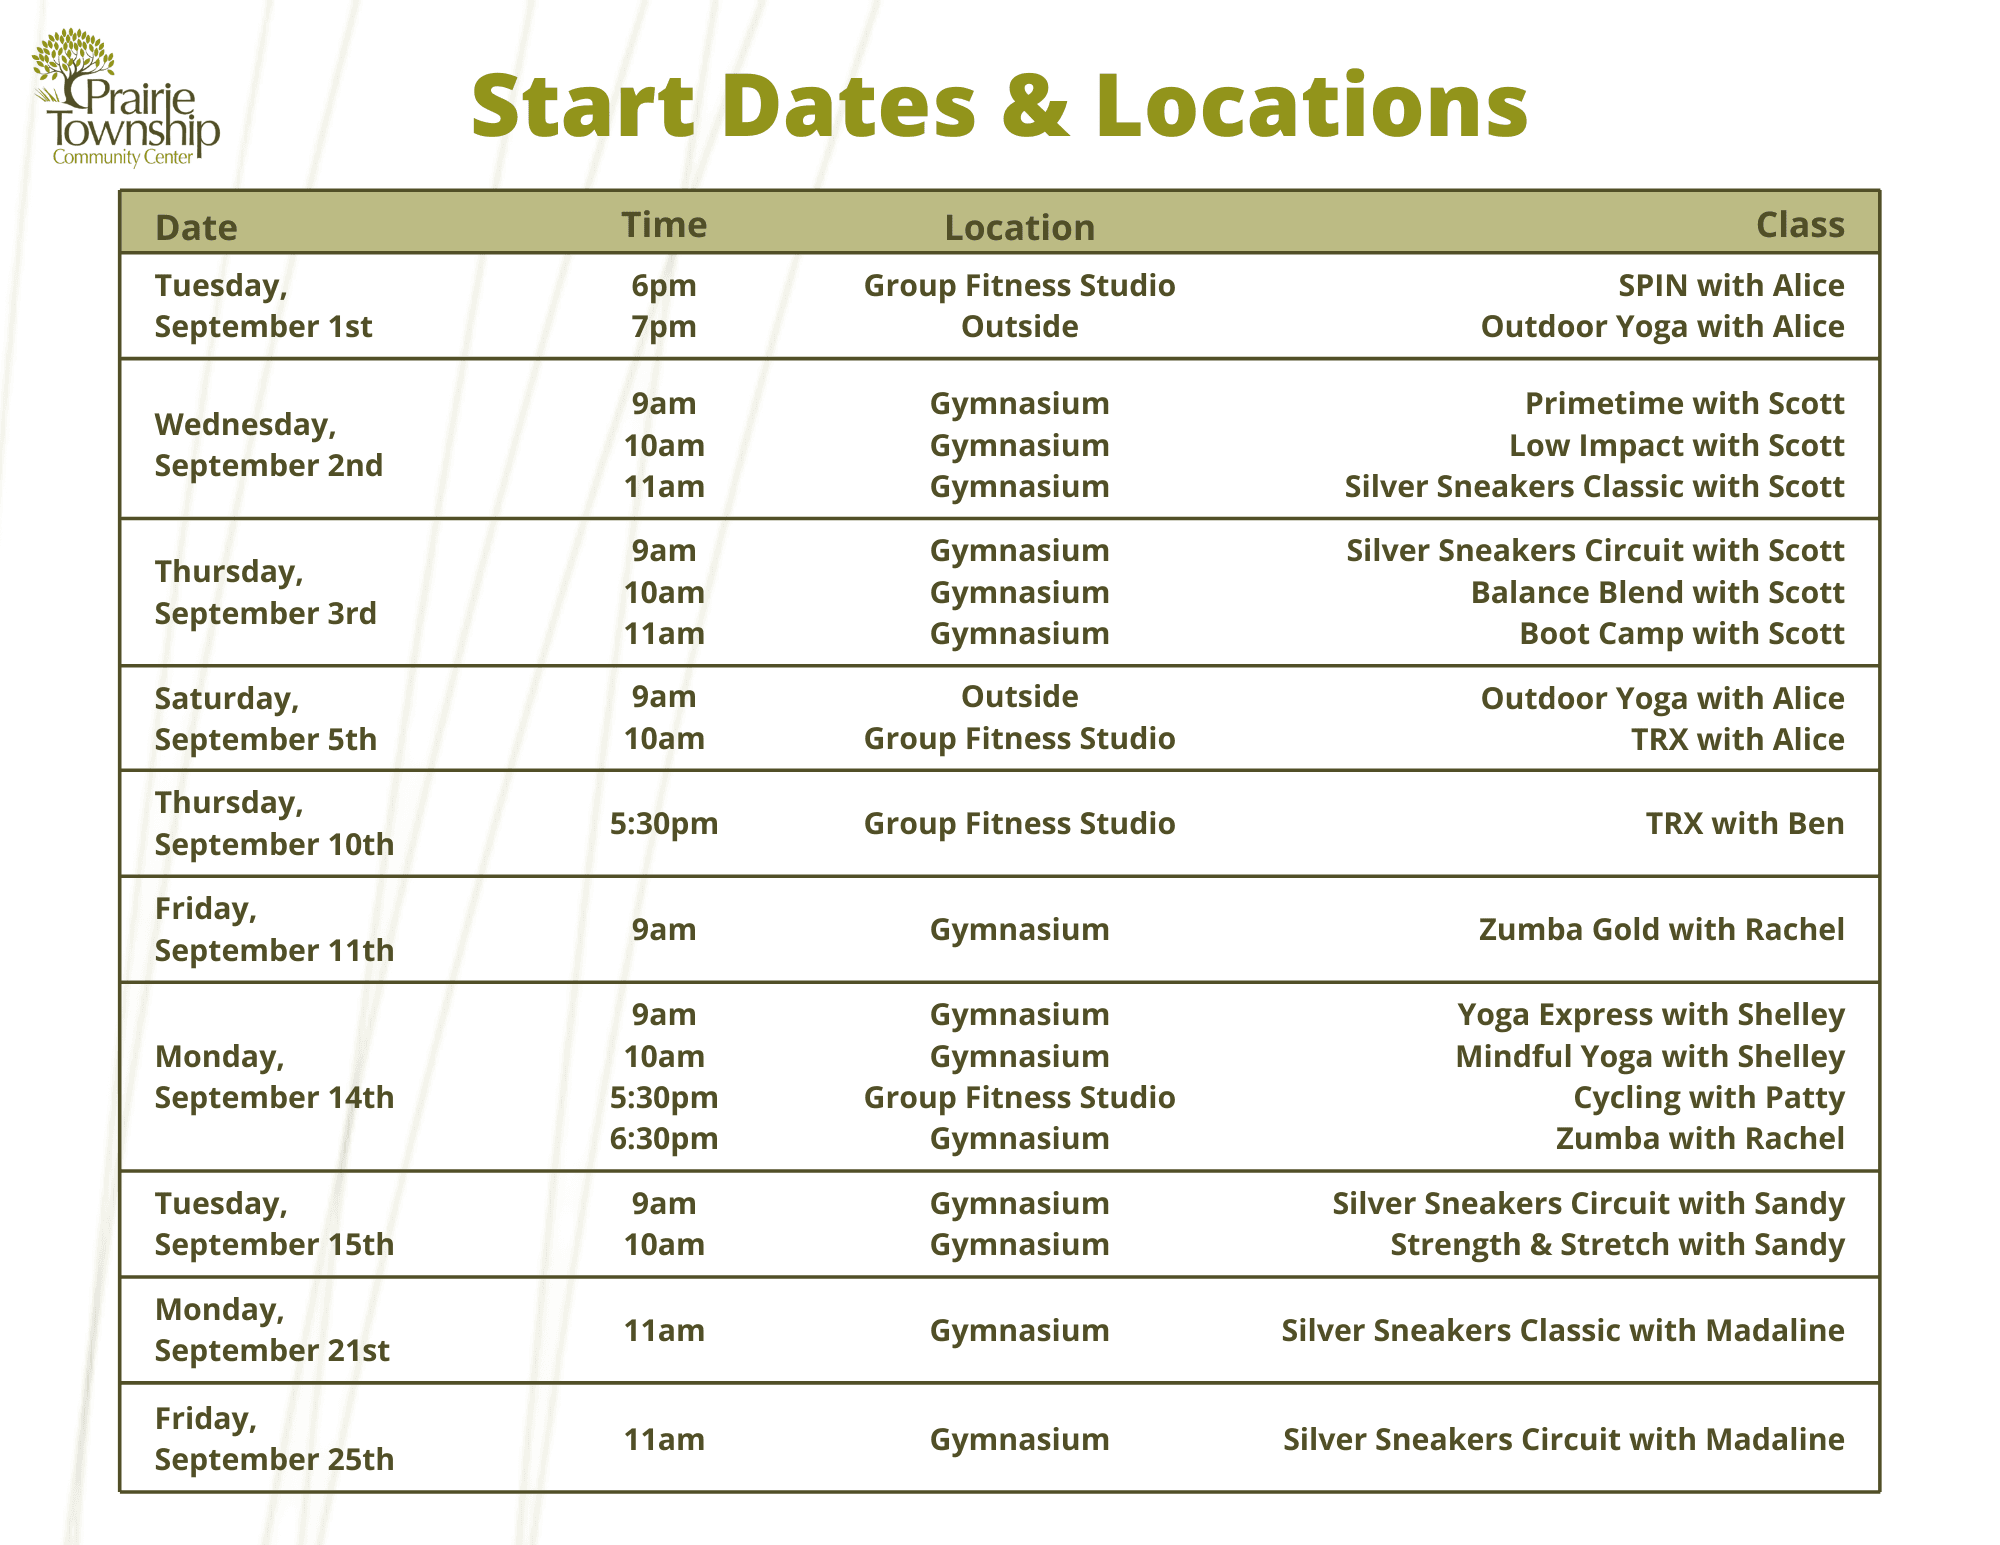 Updated Start Dates